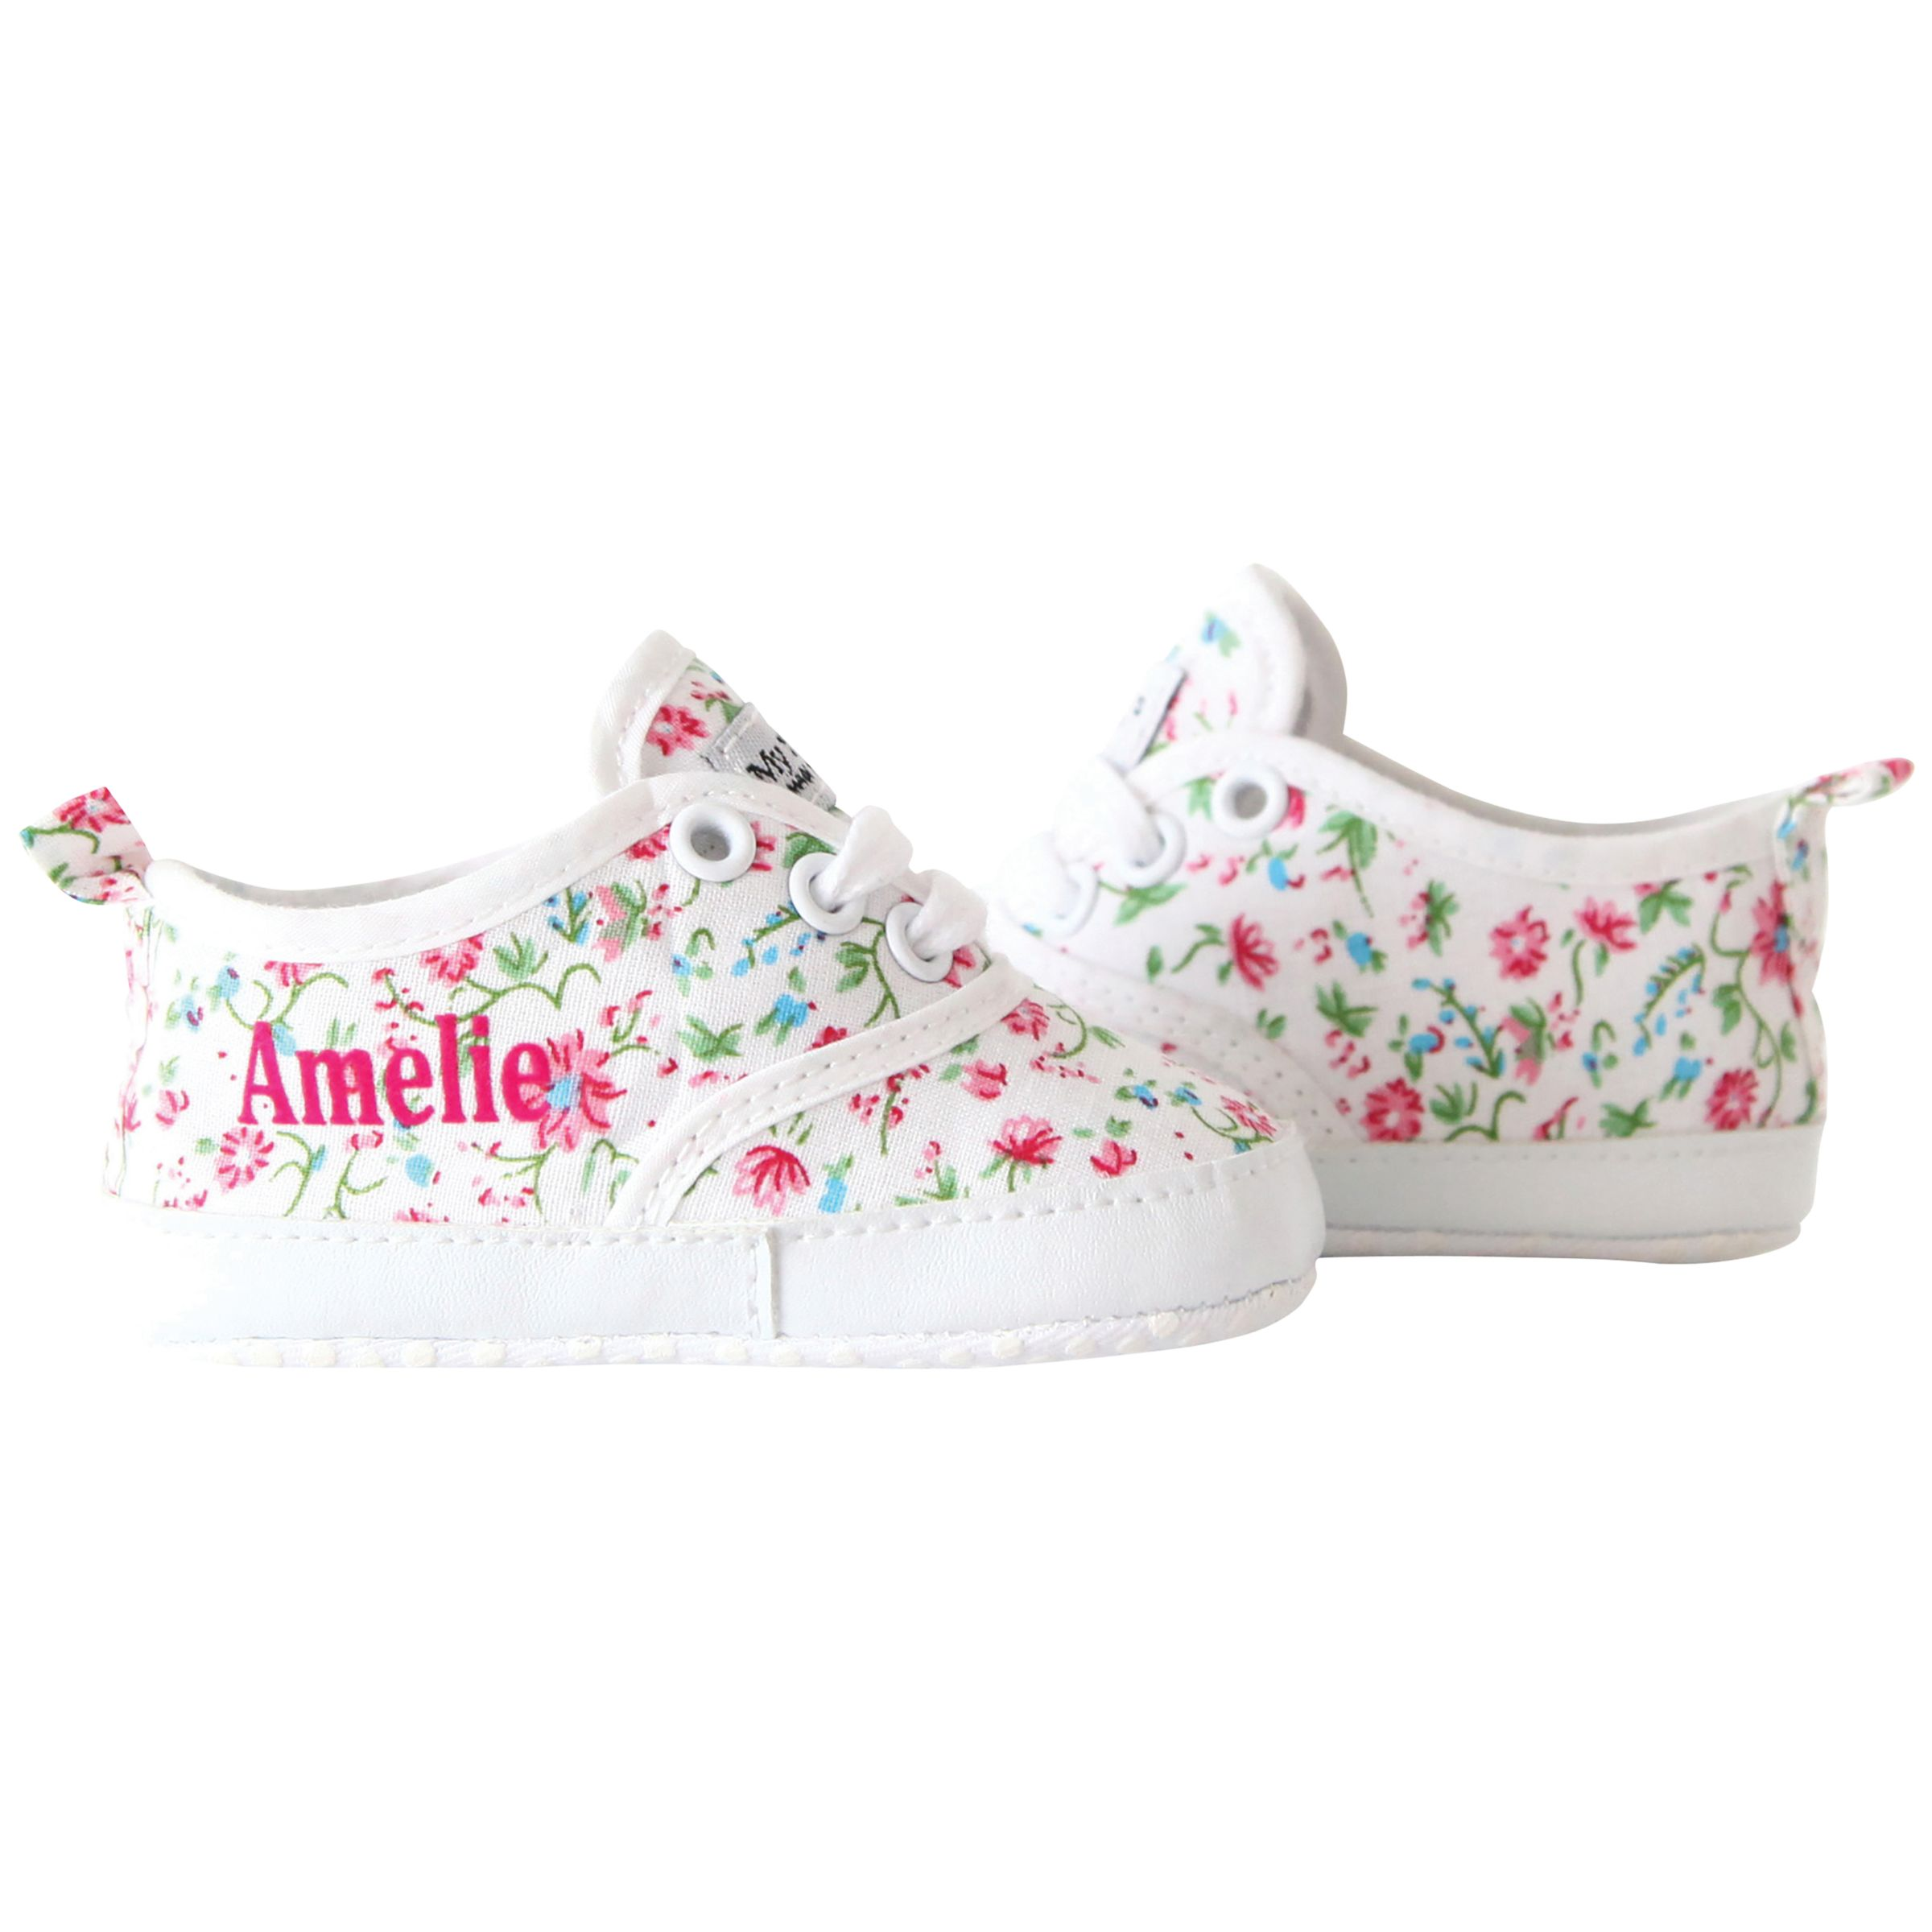 My 1st Years My 1st Years Baby Personalised Ditsy Print Trainers, Multi